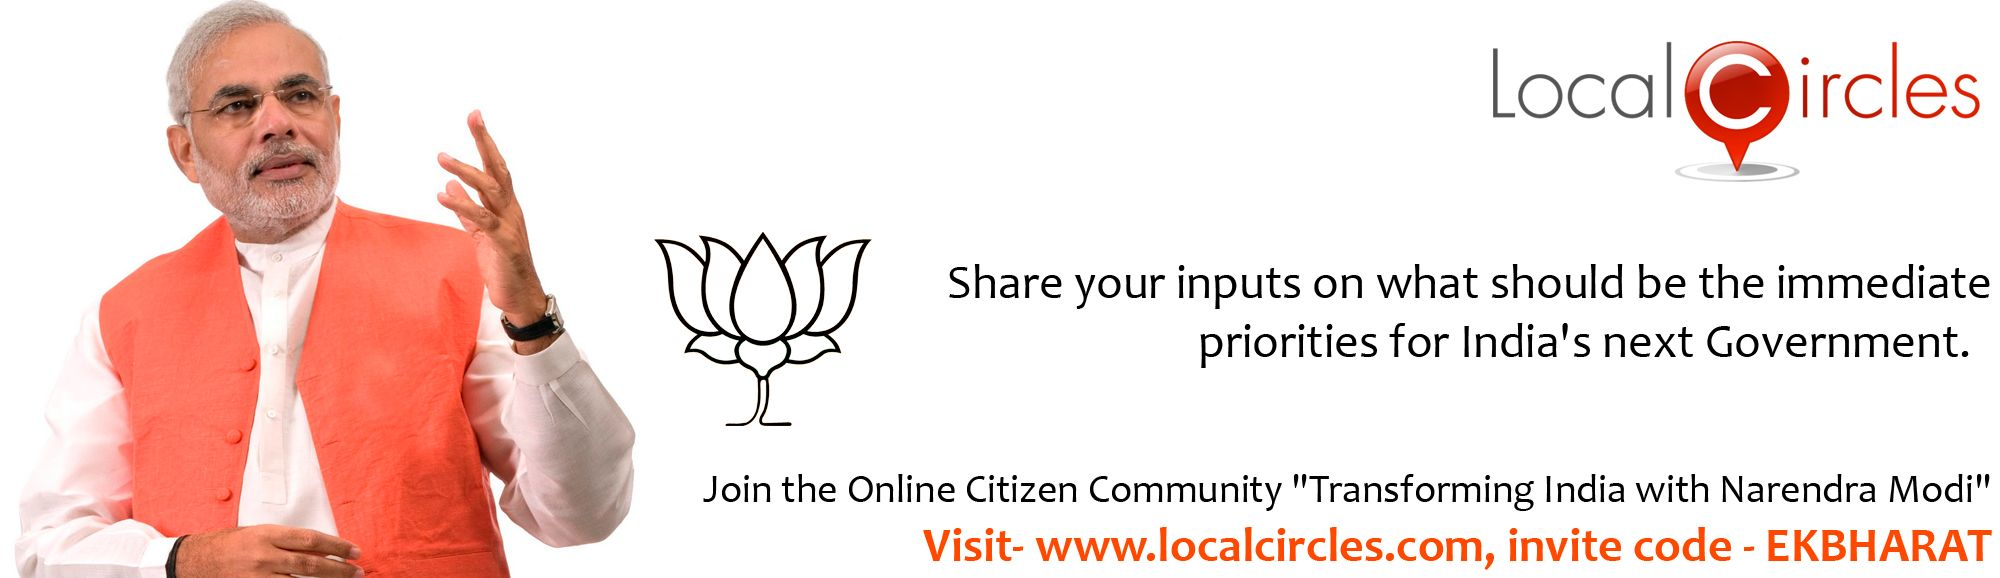 Transform_India_with_Narendra_Modi_-_LocalCircles-EKBHARAT___20140512030207___.jpg